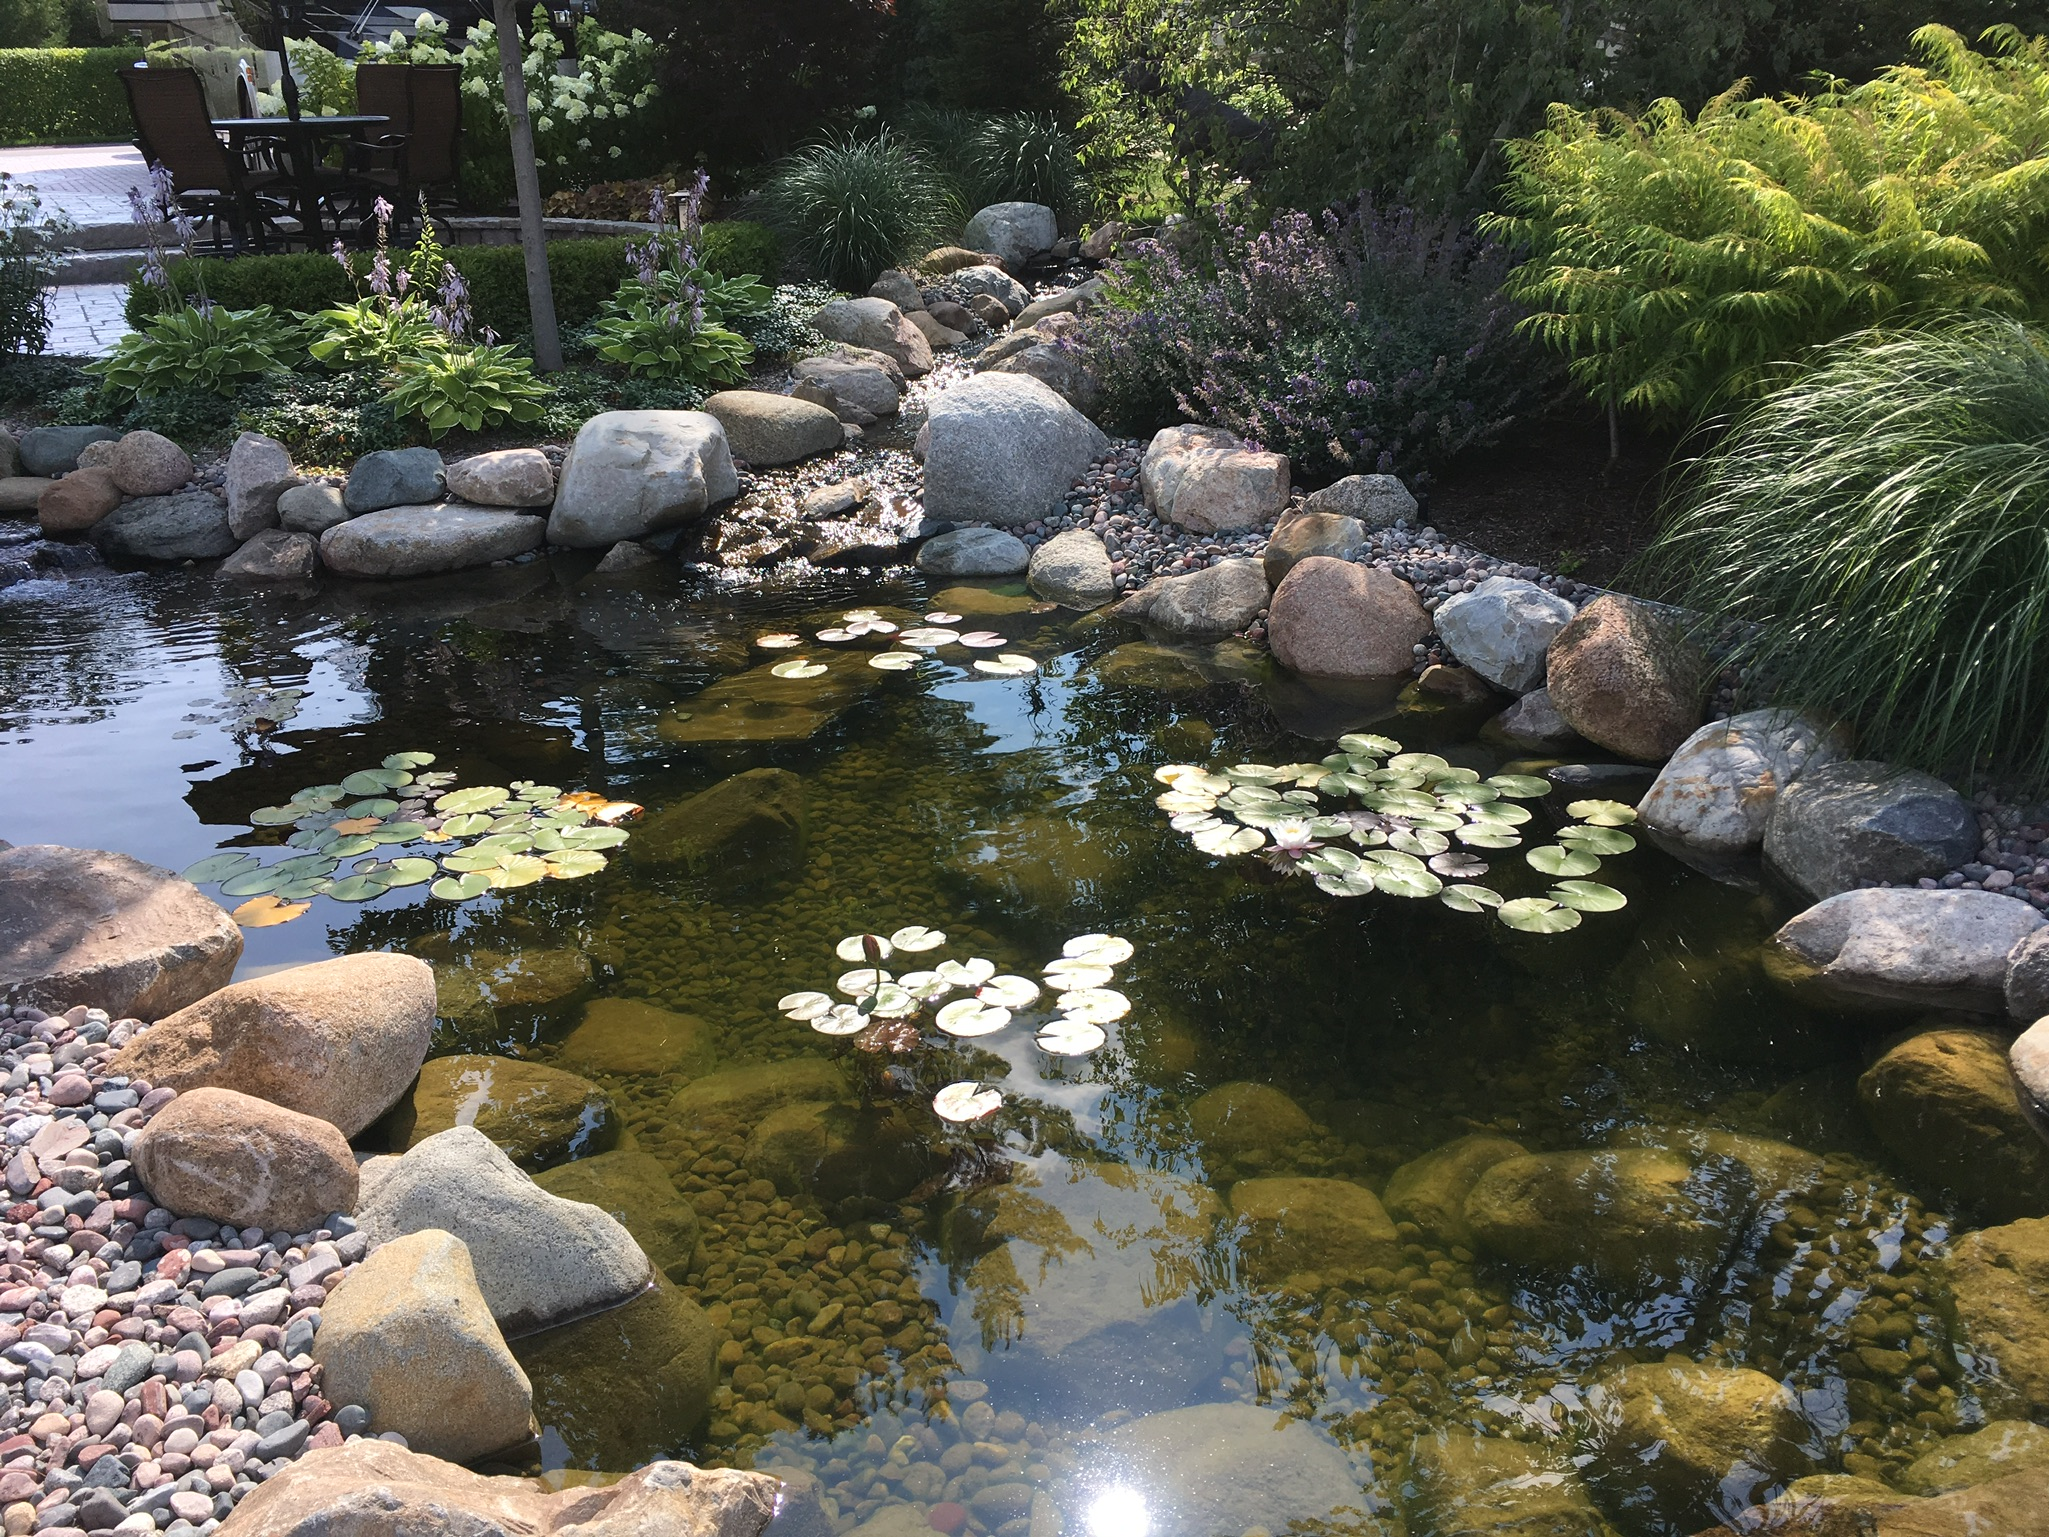 You can see in this established pond that the water is clear, the plants are healthy and the rocks are fuzzy. This is a healthy pond!